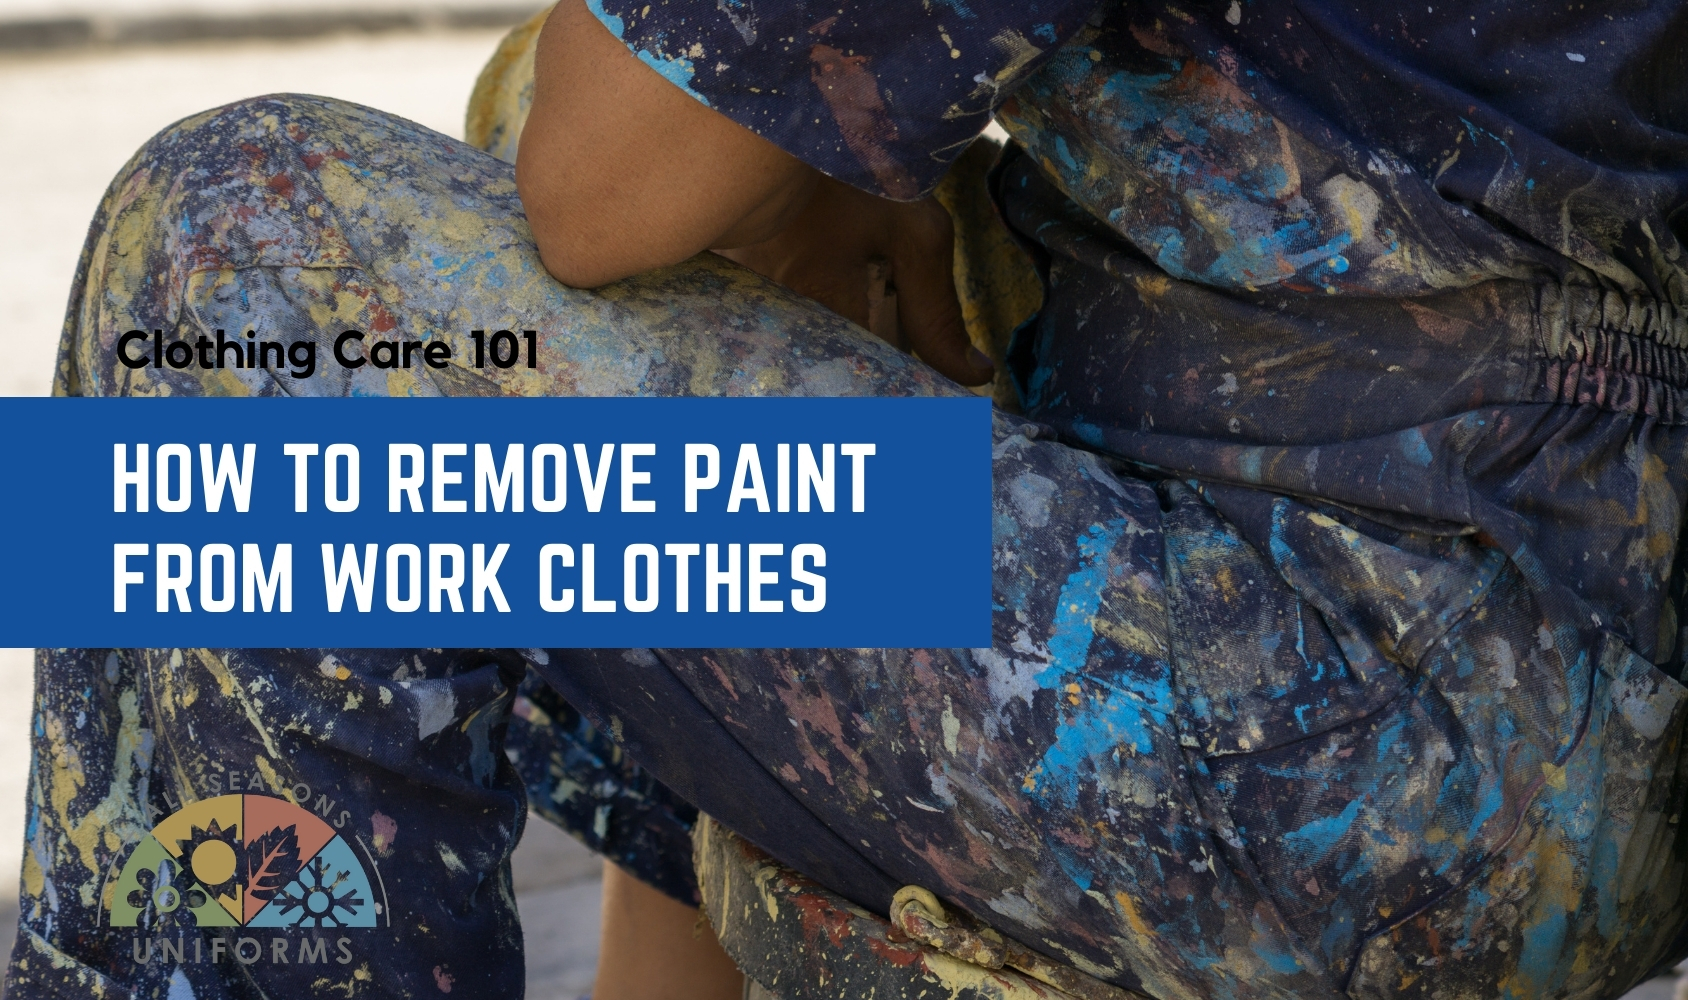 How to Remove Paint From Work Clothes